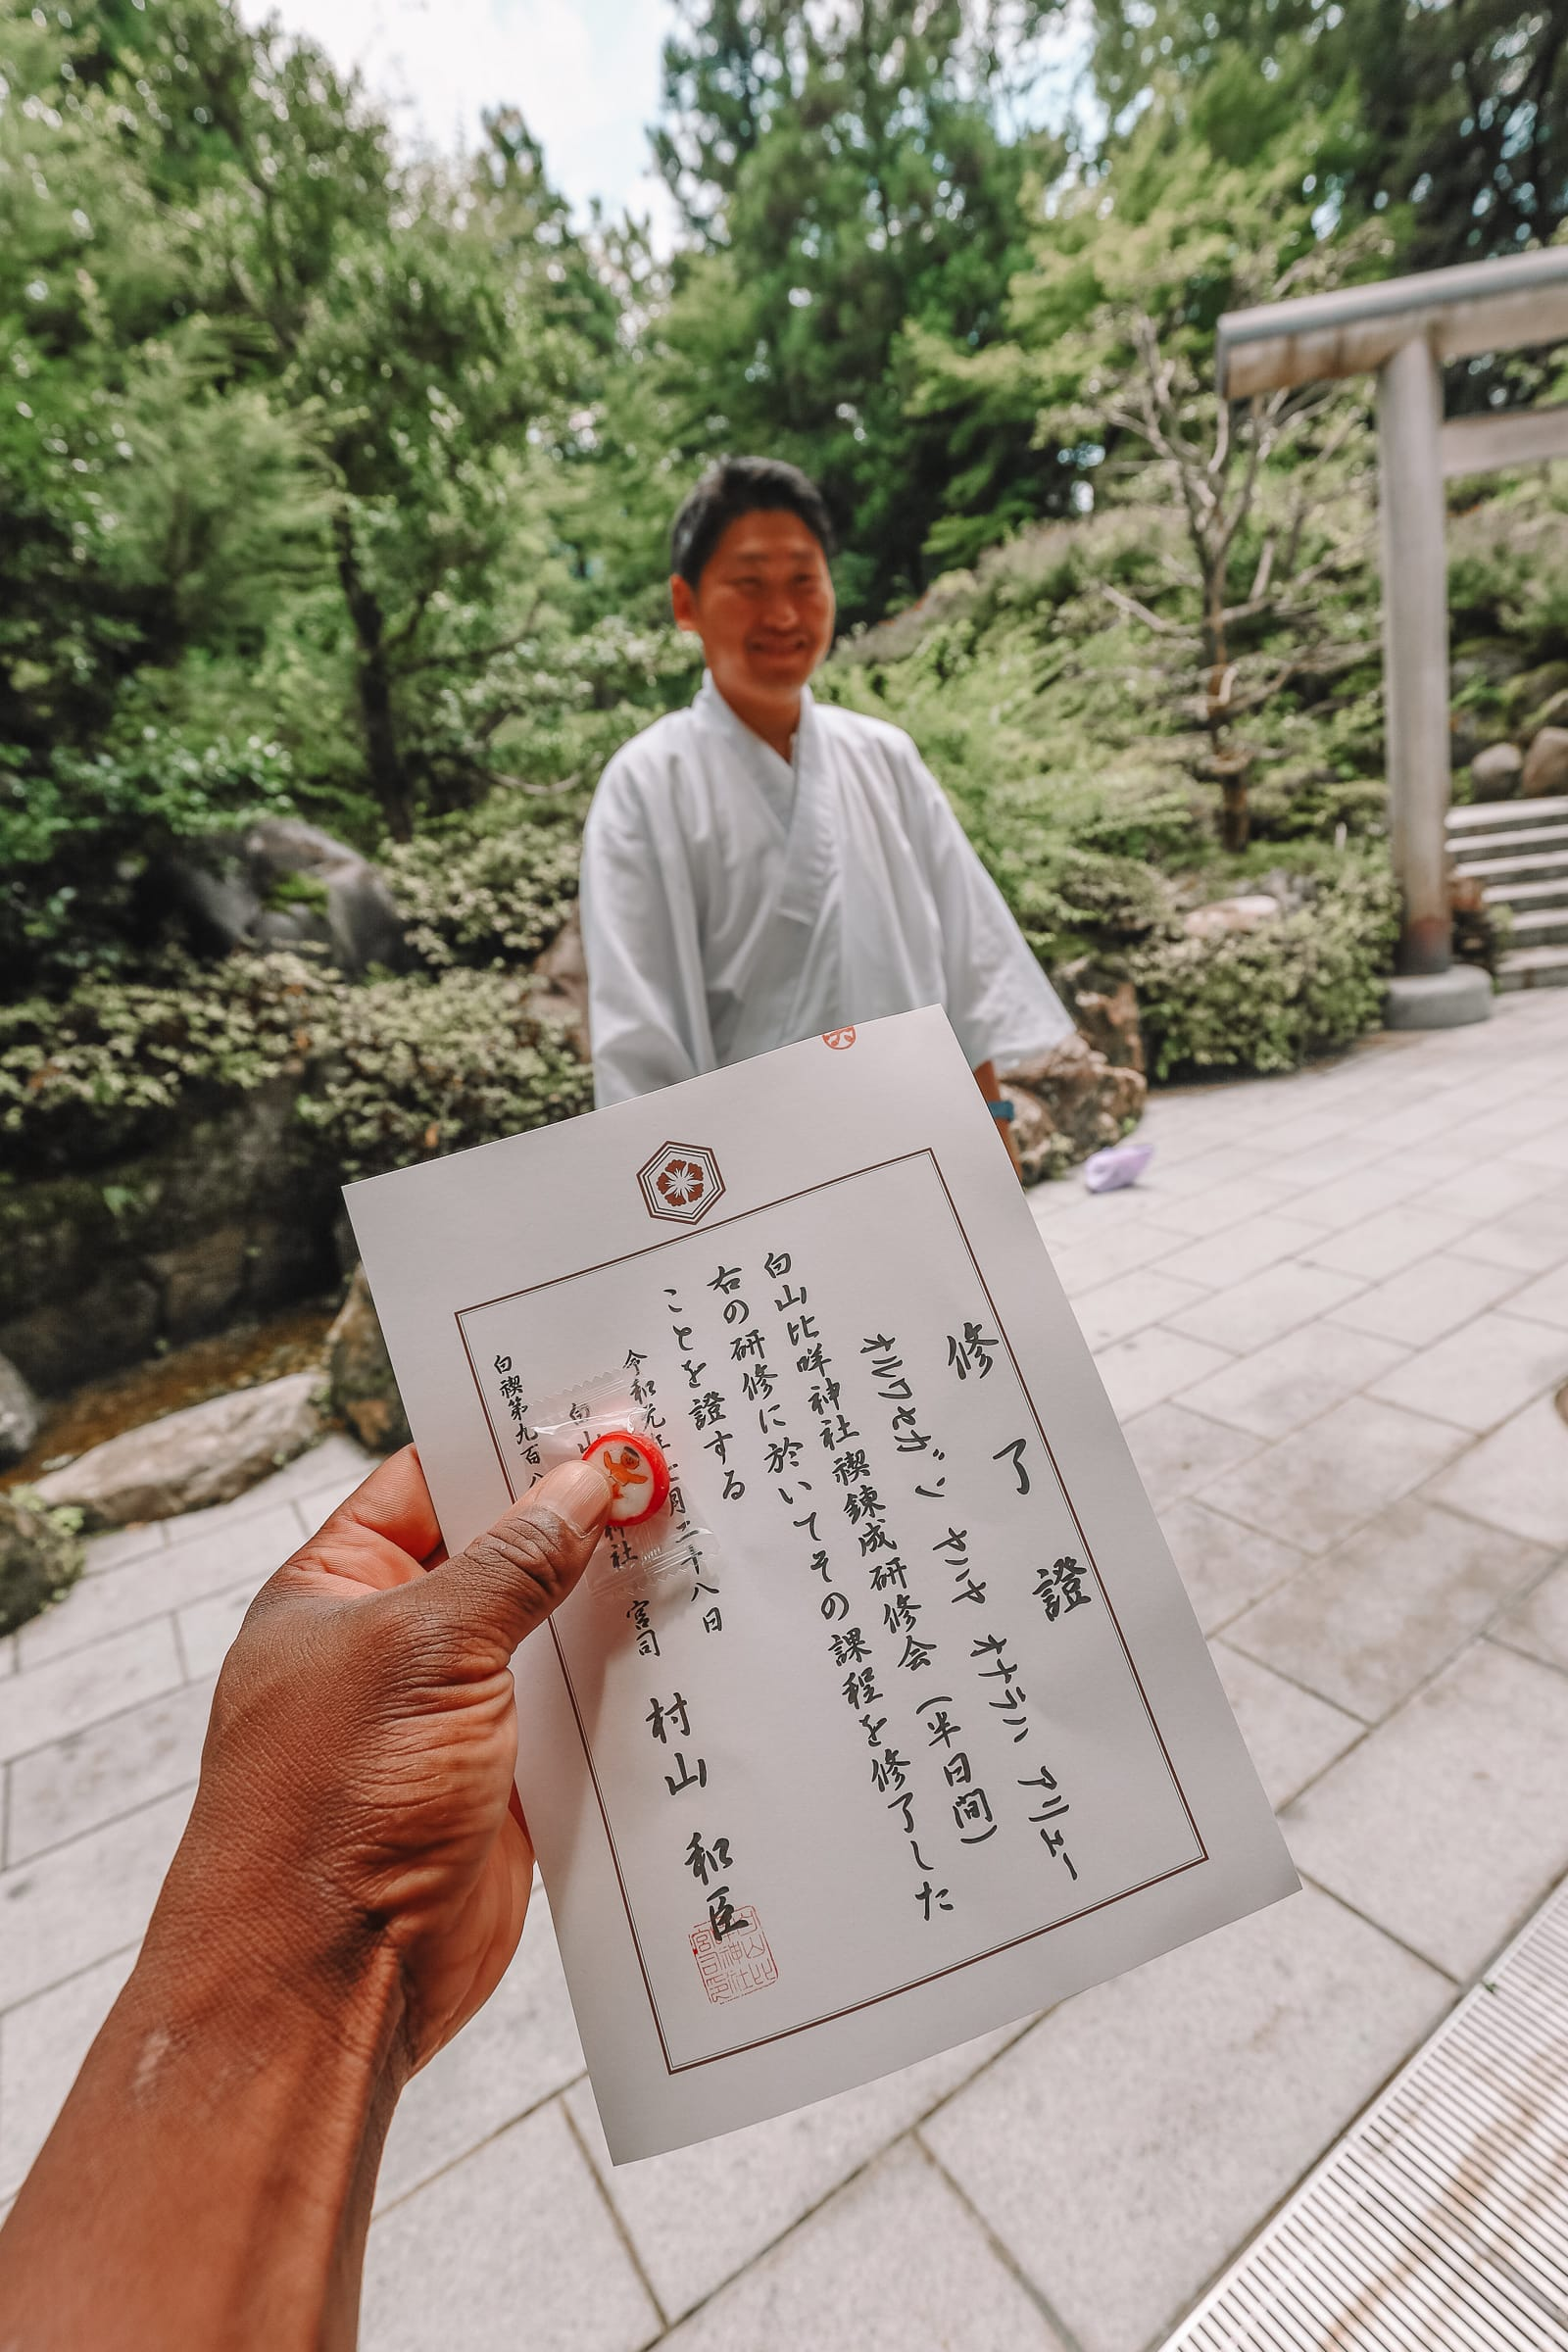 A Misogi Purification Ritual And Temples In Hakusan City - Japan (38)